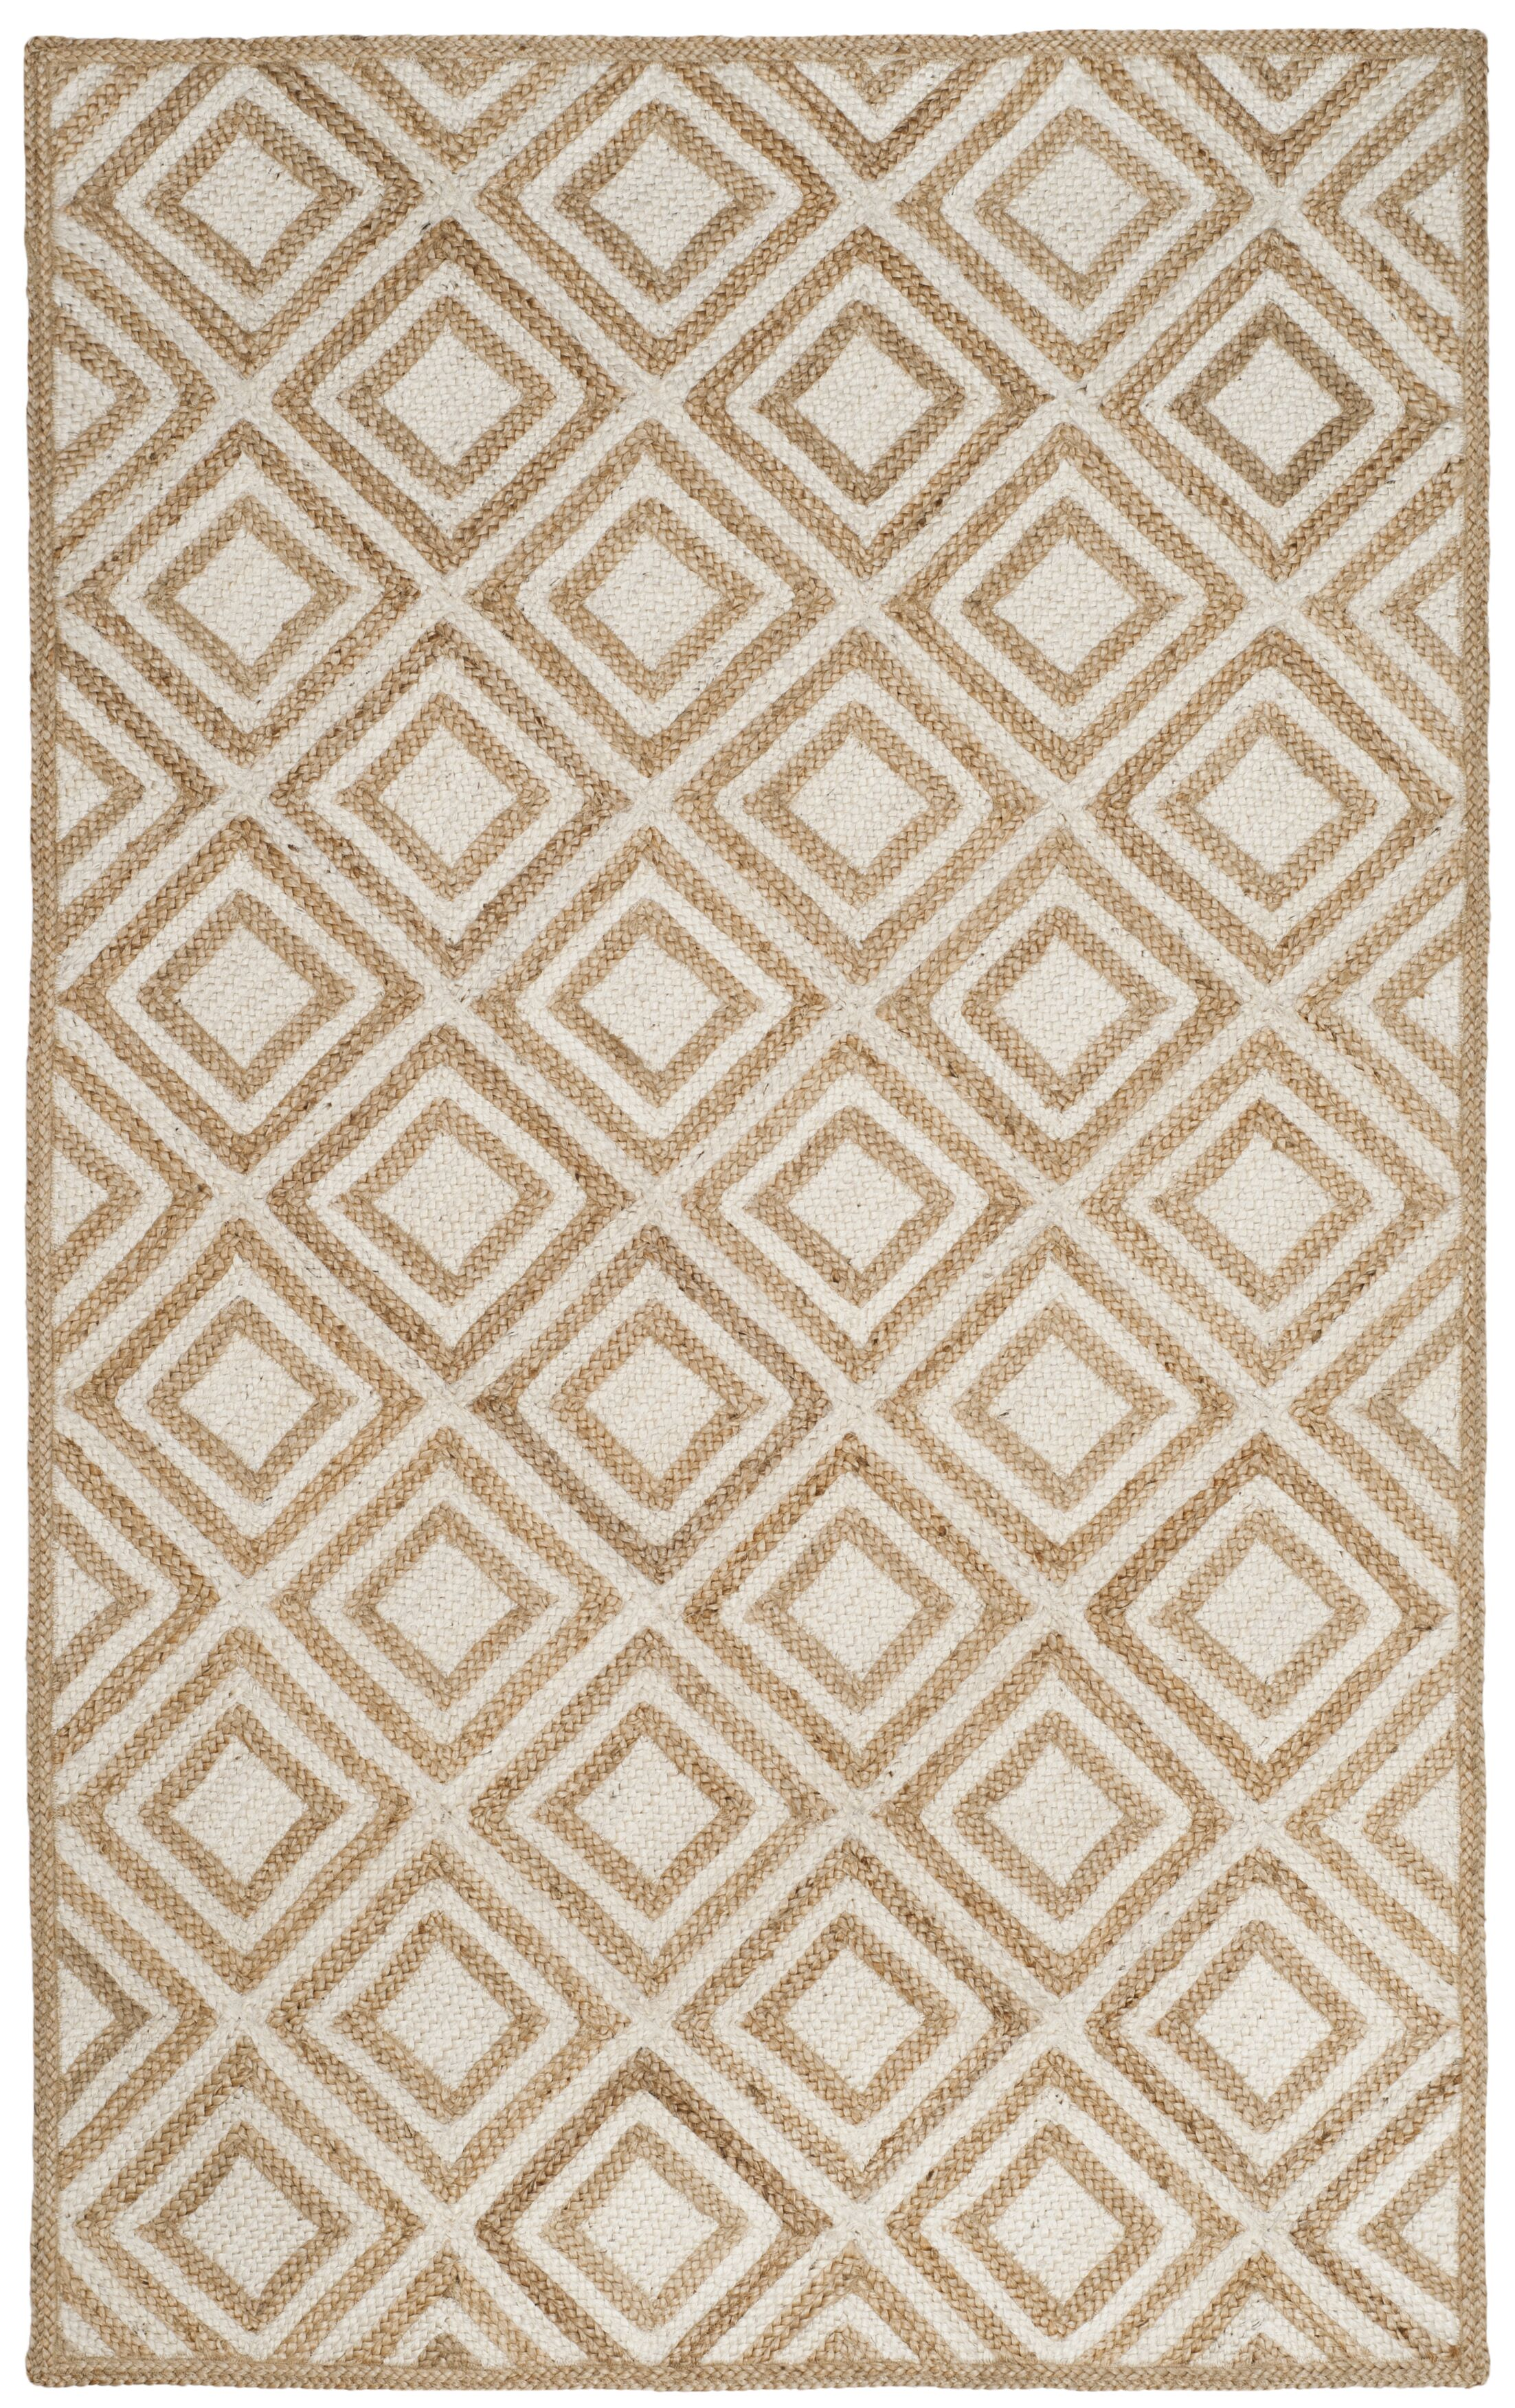 Abhay Contemporary Hand Woven Beige/White Area Rug Rug Size: Rectangle 5' x 8'